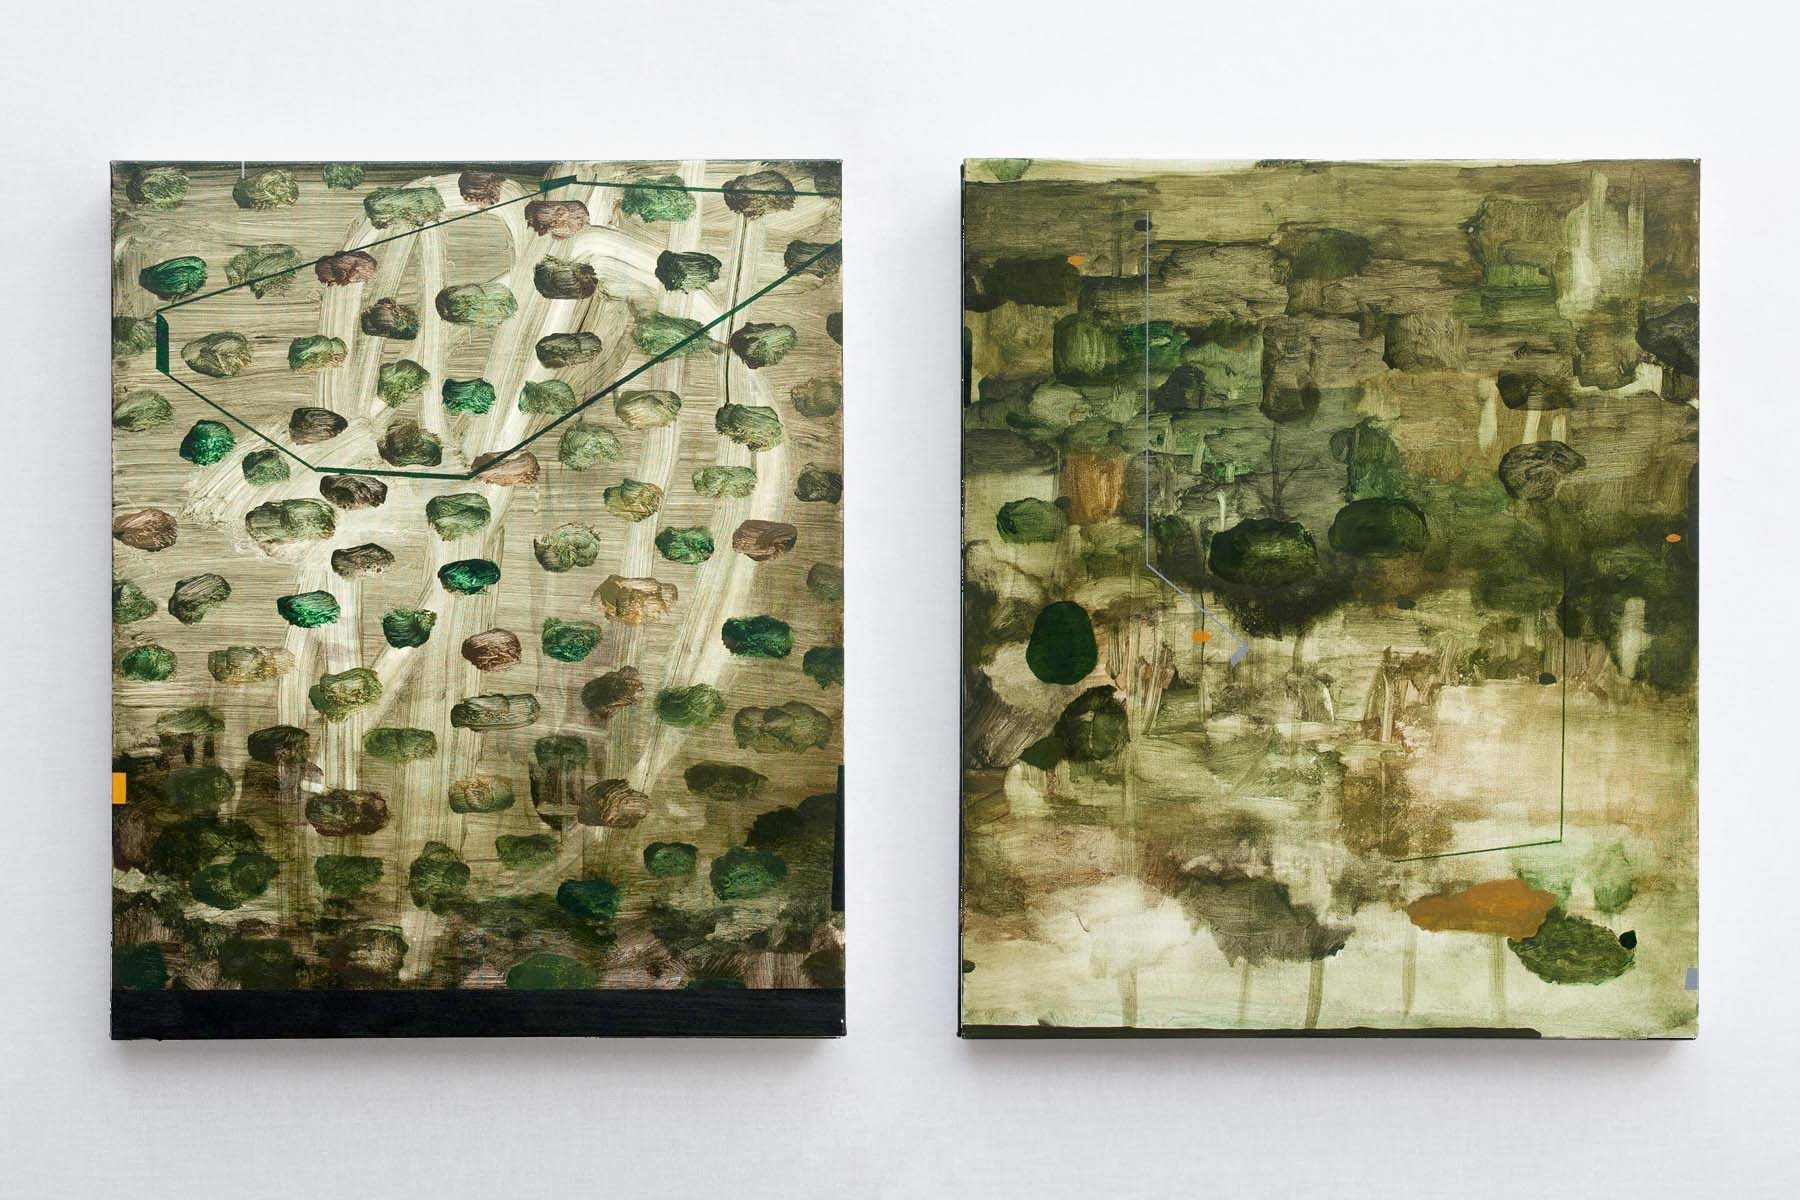 Mirko Baricchi, Selva #11 and #12, 2018, oil on canvas, 60 x 50 cm each